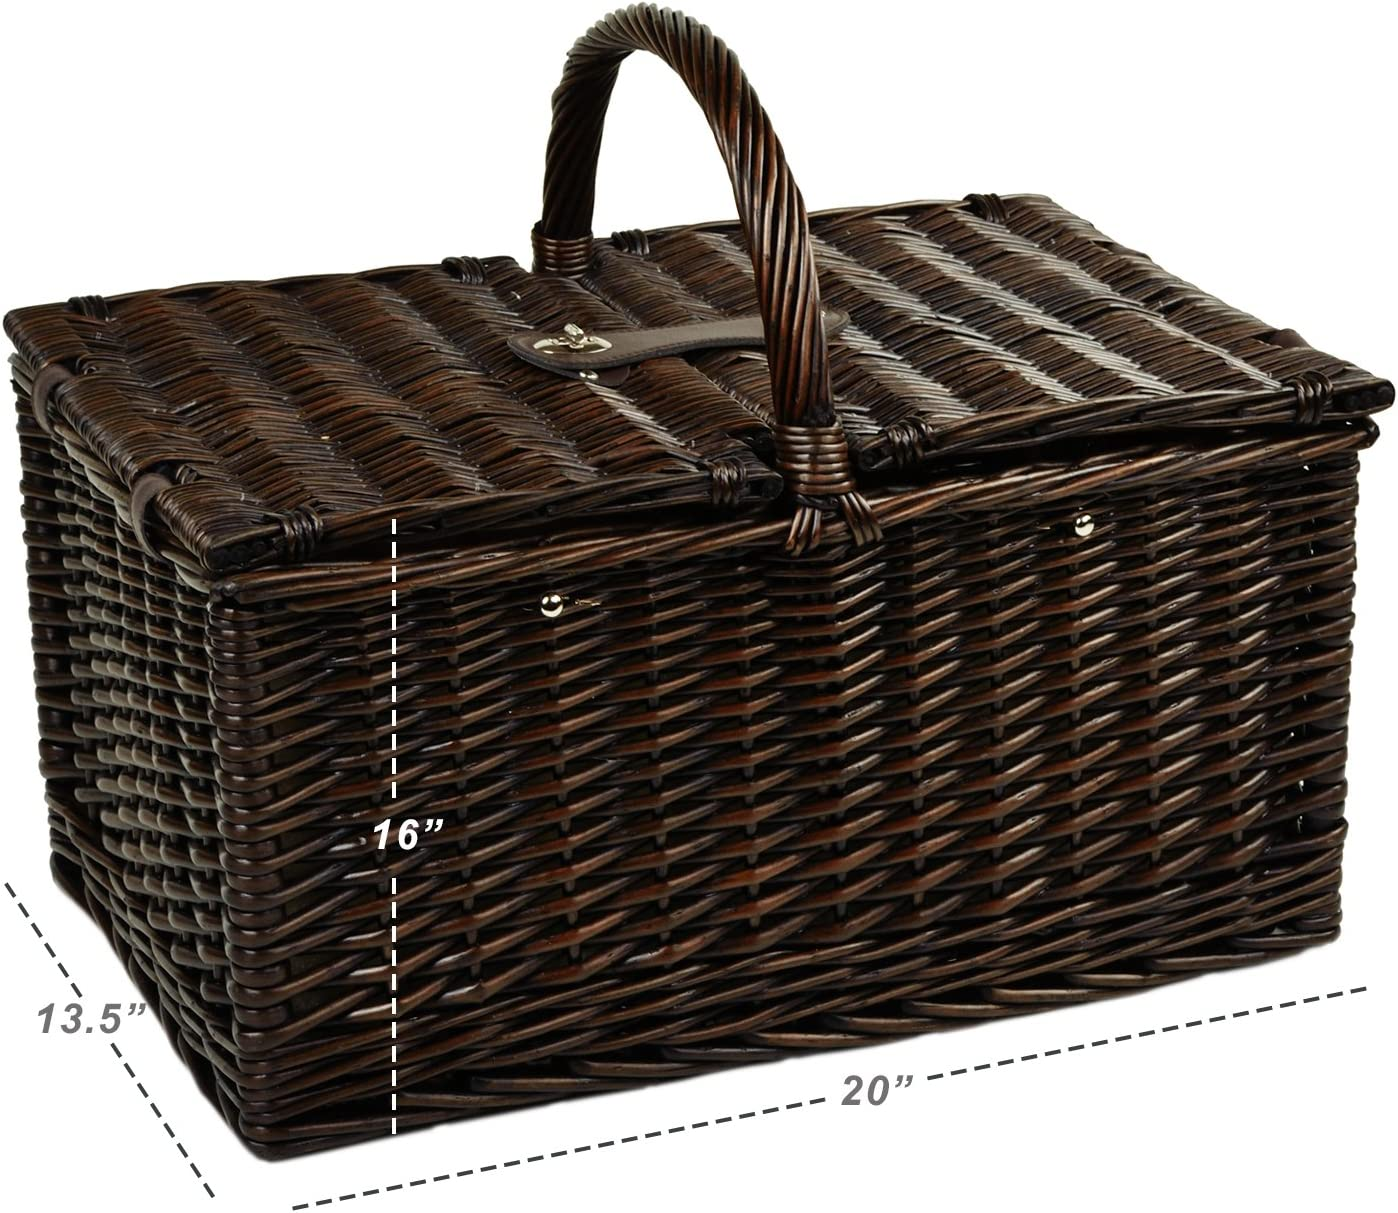 Picnic at Ascot Surrey Willow Picnic Basket with Service for 2 London Plaid